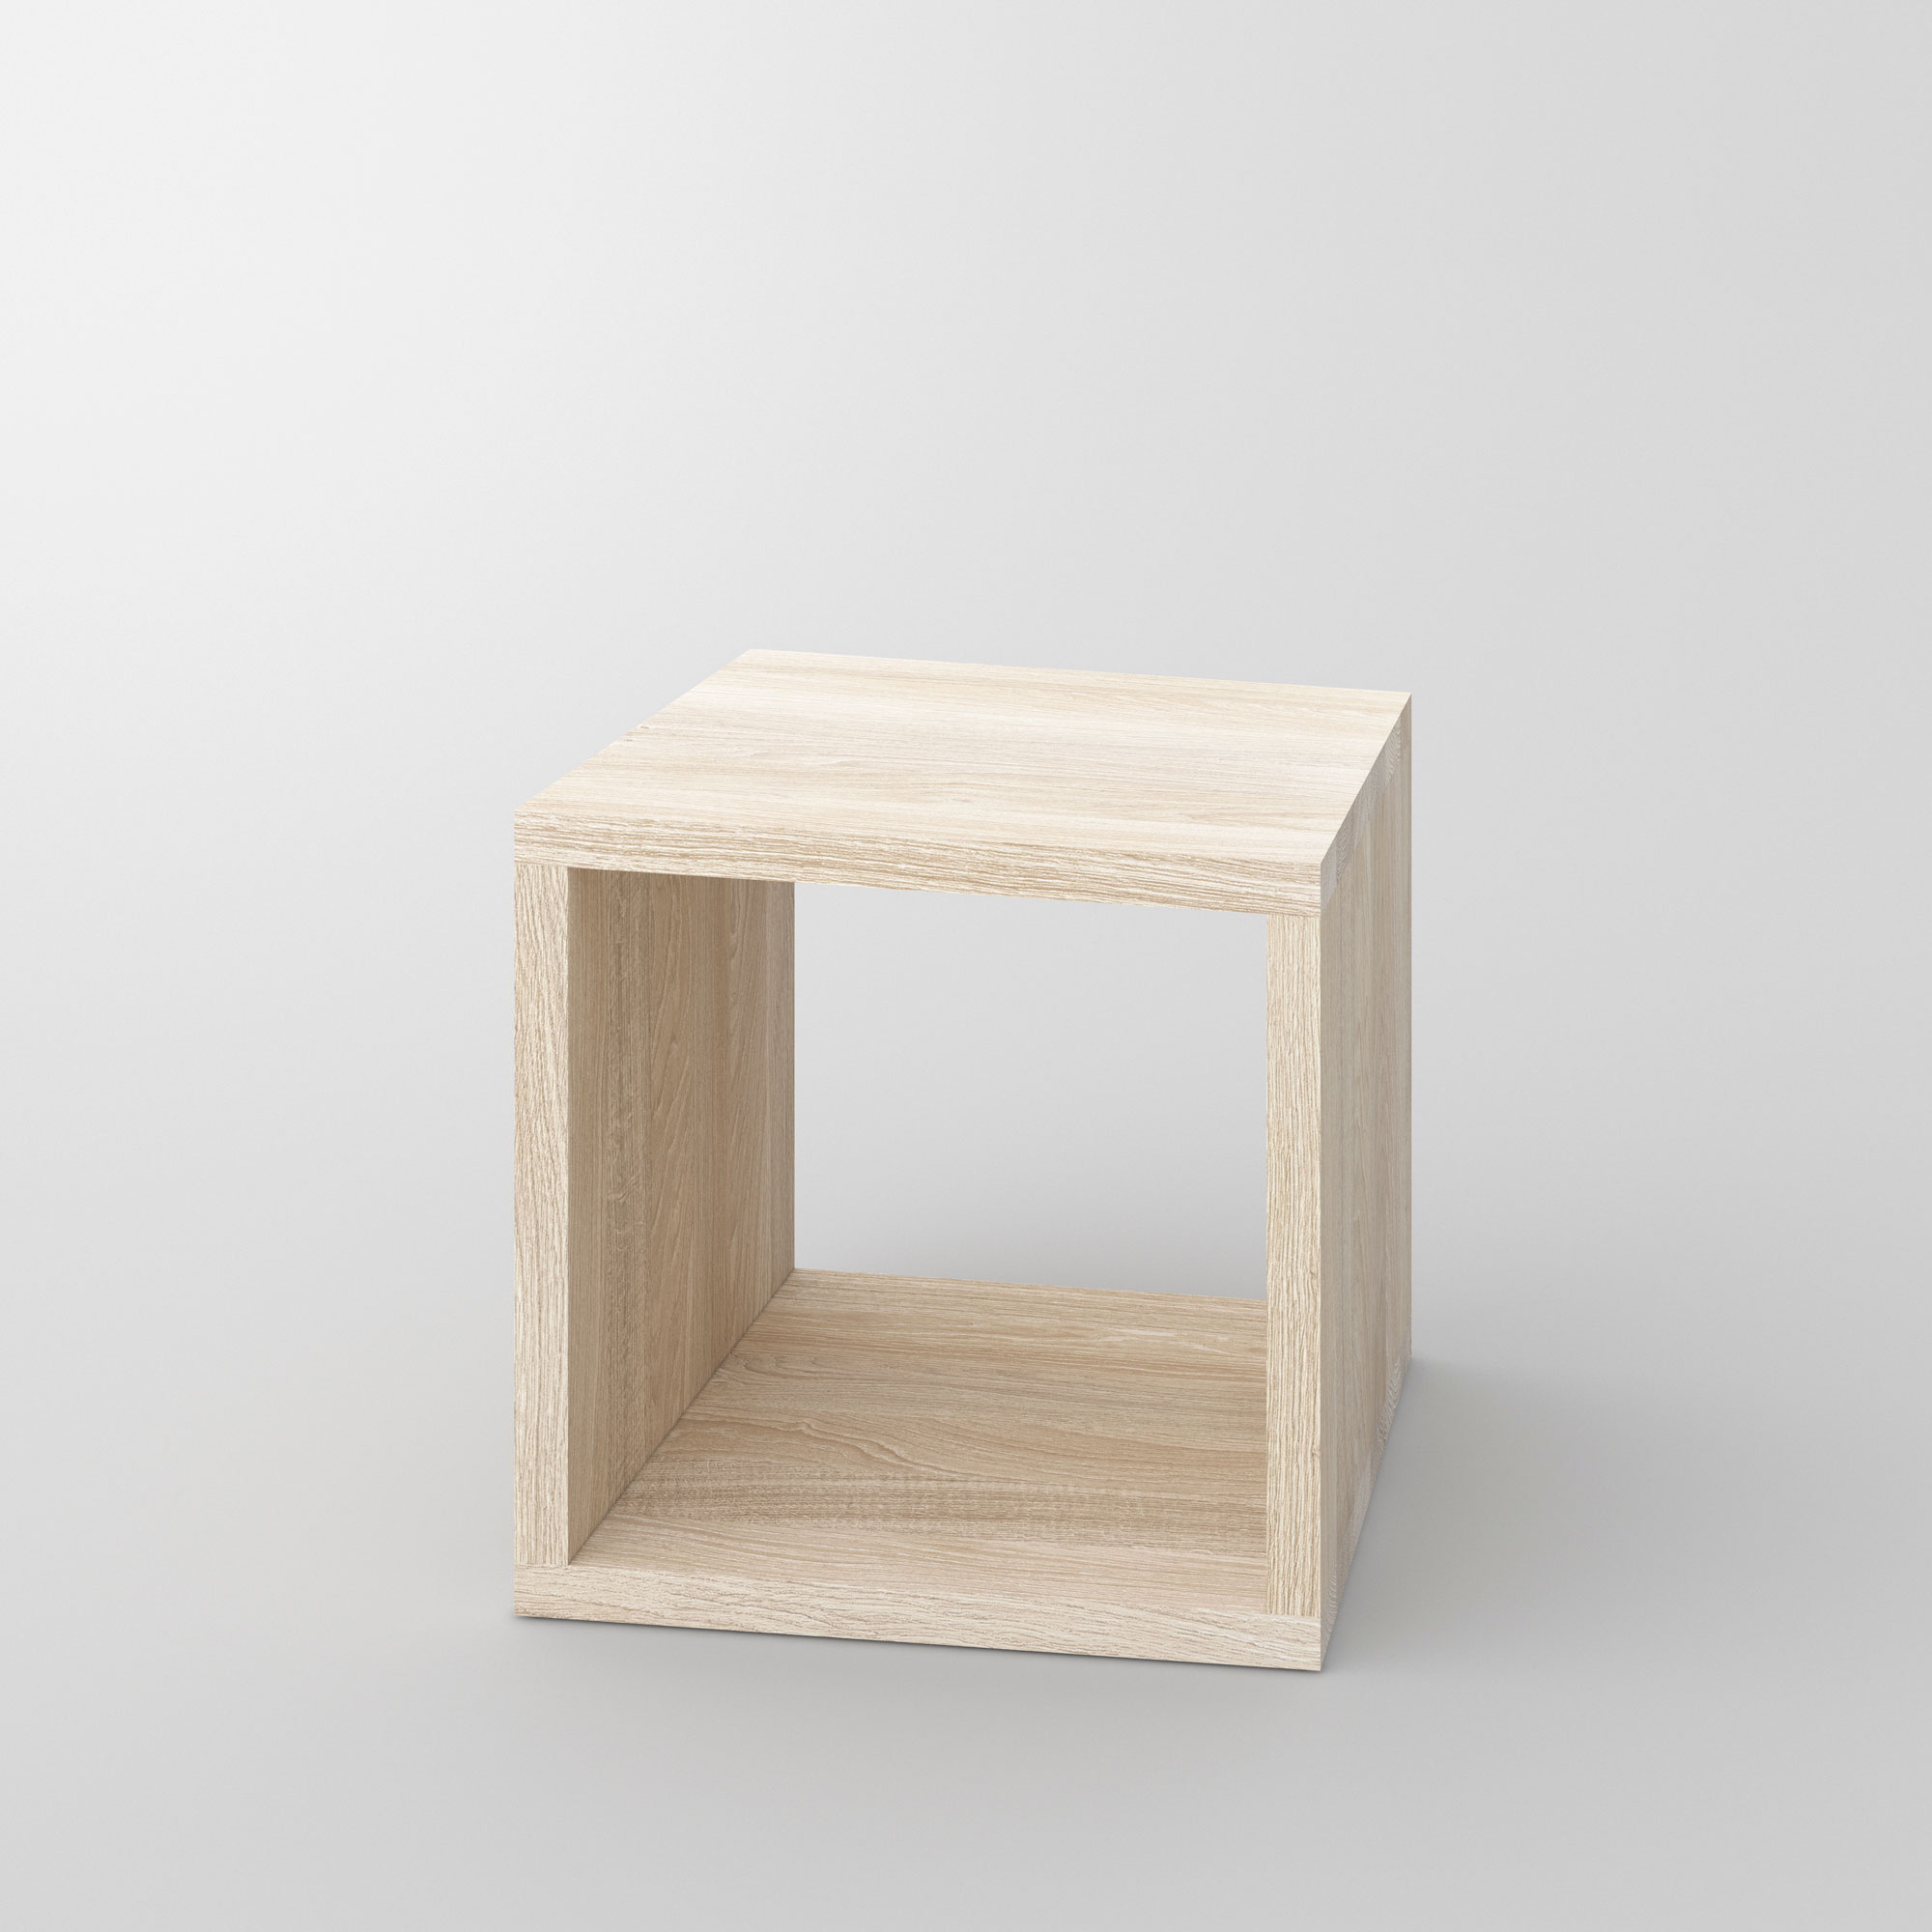 Multifunctional Wooden Coffee Table MENA B 3 cam2 custom made in solid wood by vitamin design